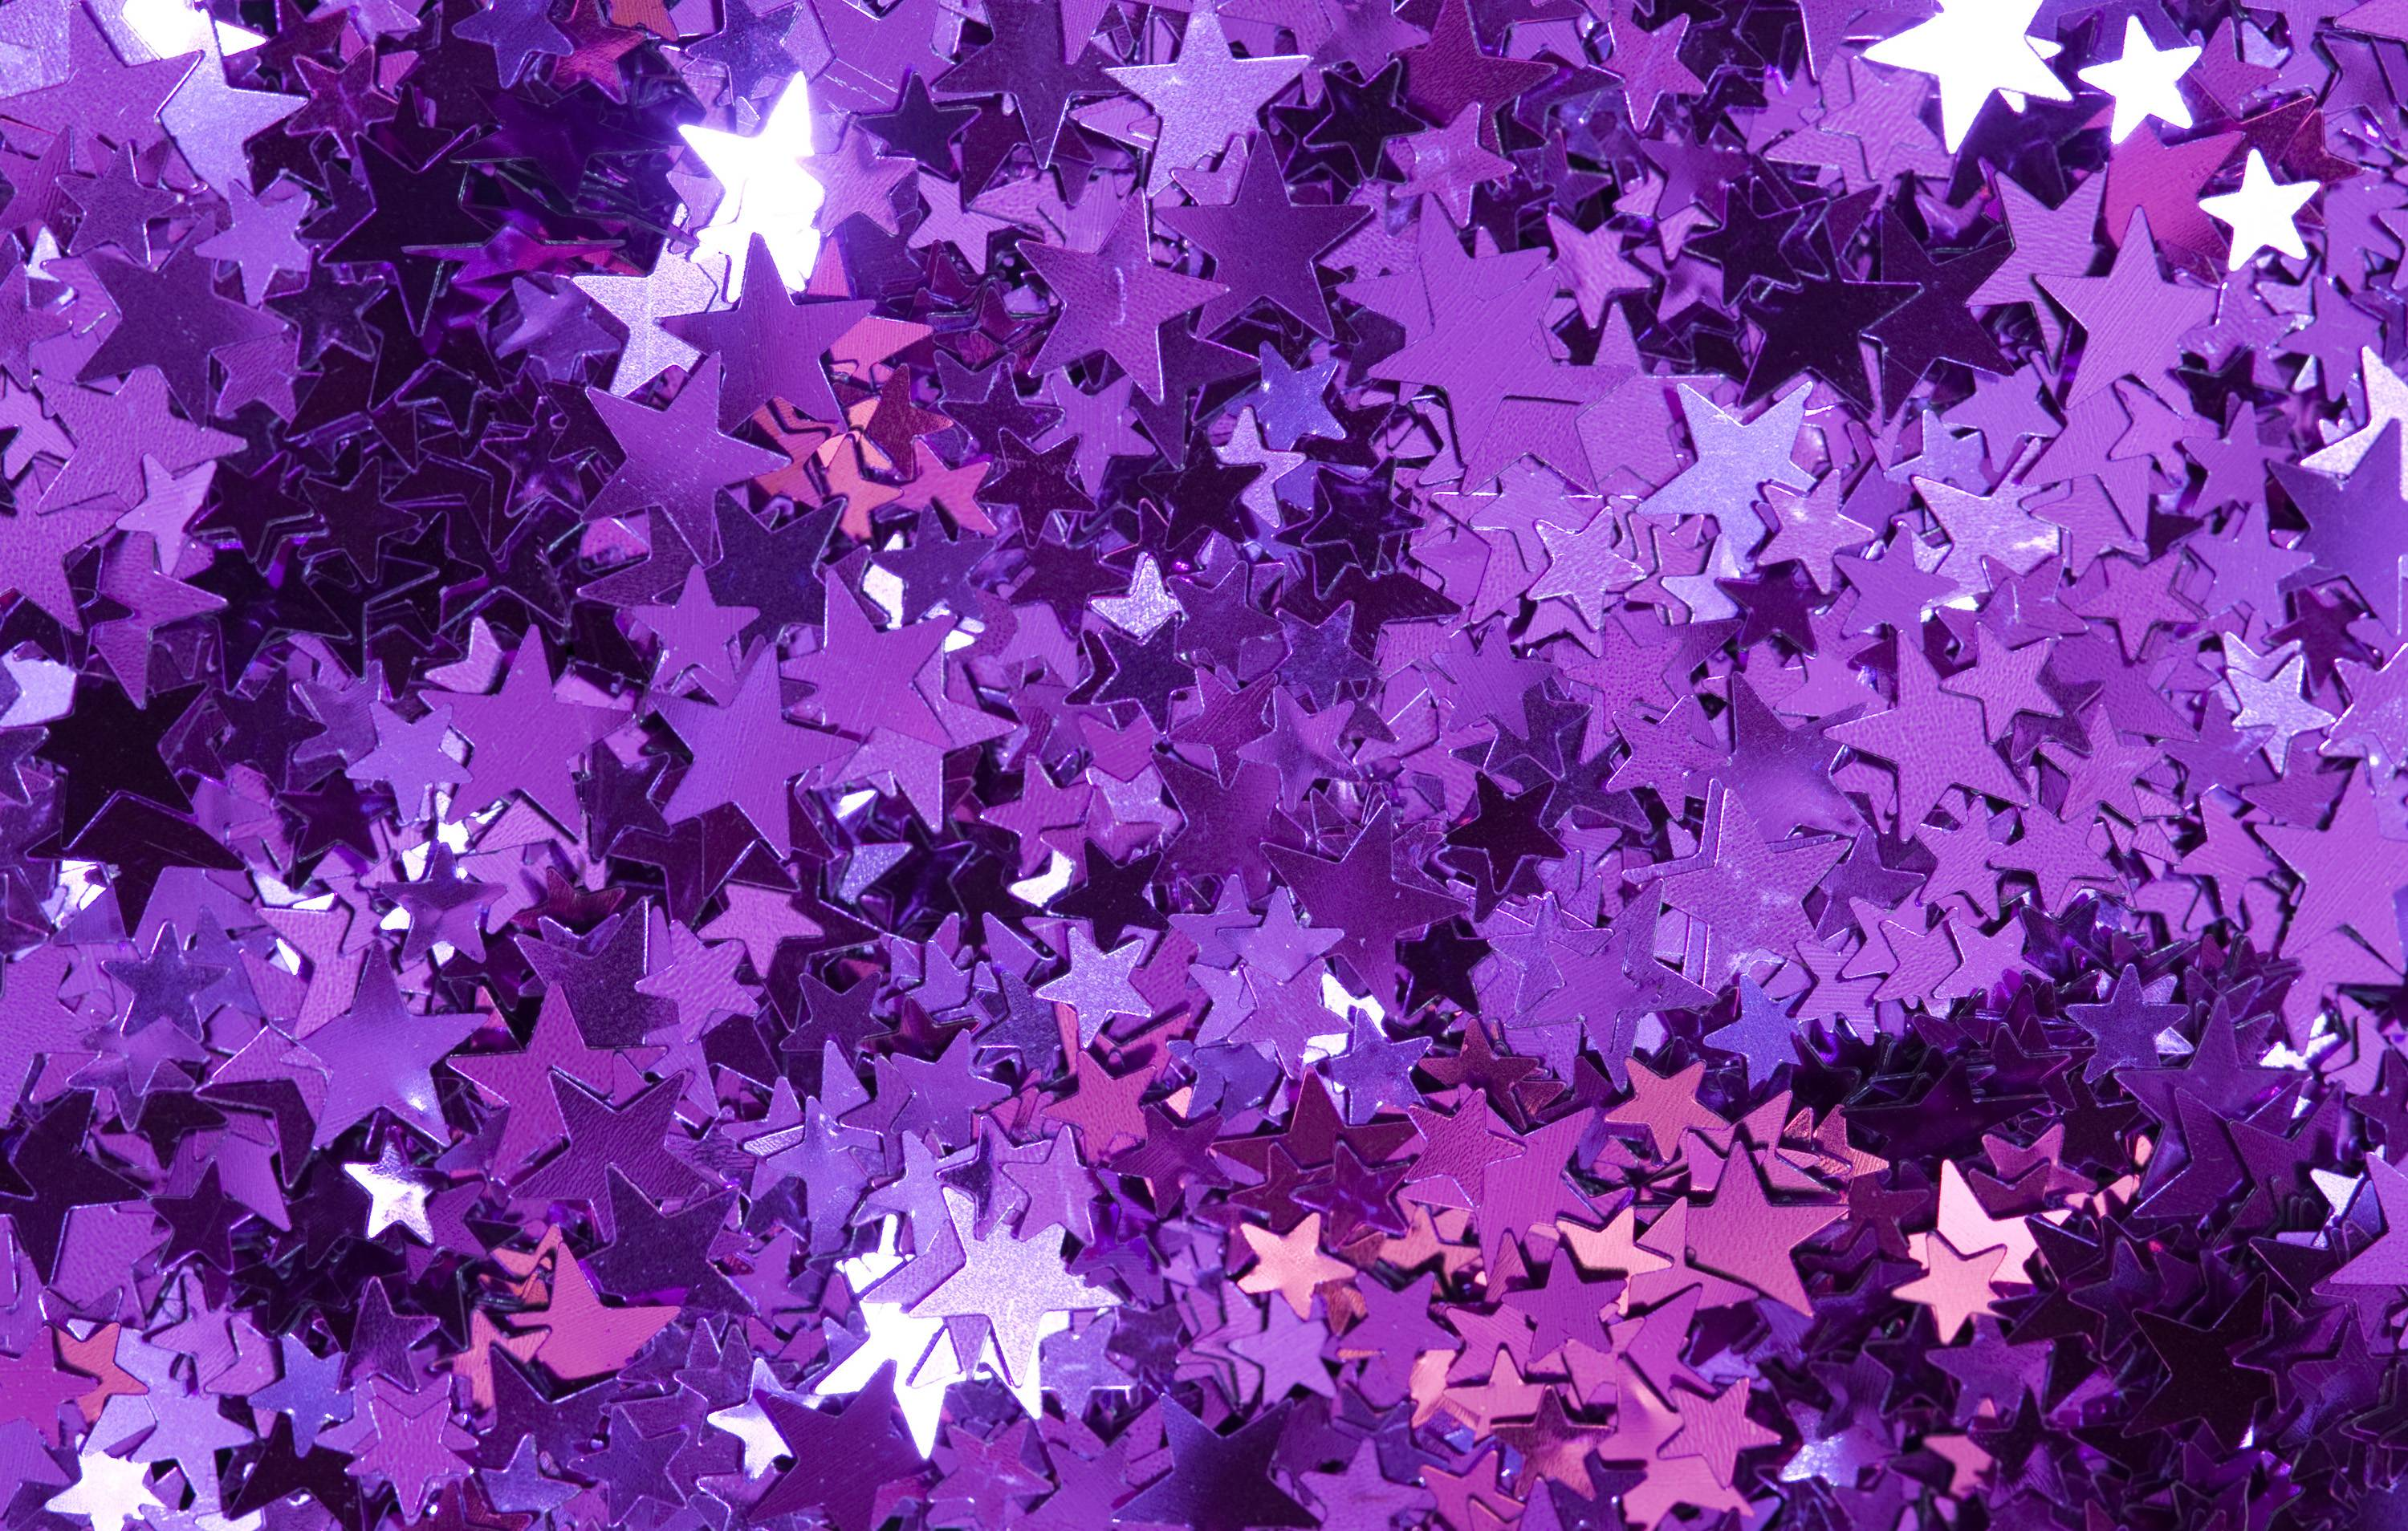 A lovingly curated selection of 189 free 4k purple wallpapers and background images. Glitter Desktop Backgrounds - Wallpaper Cave